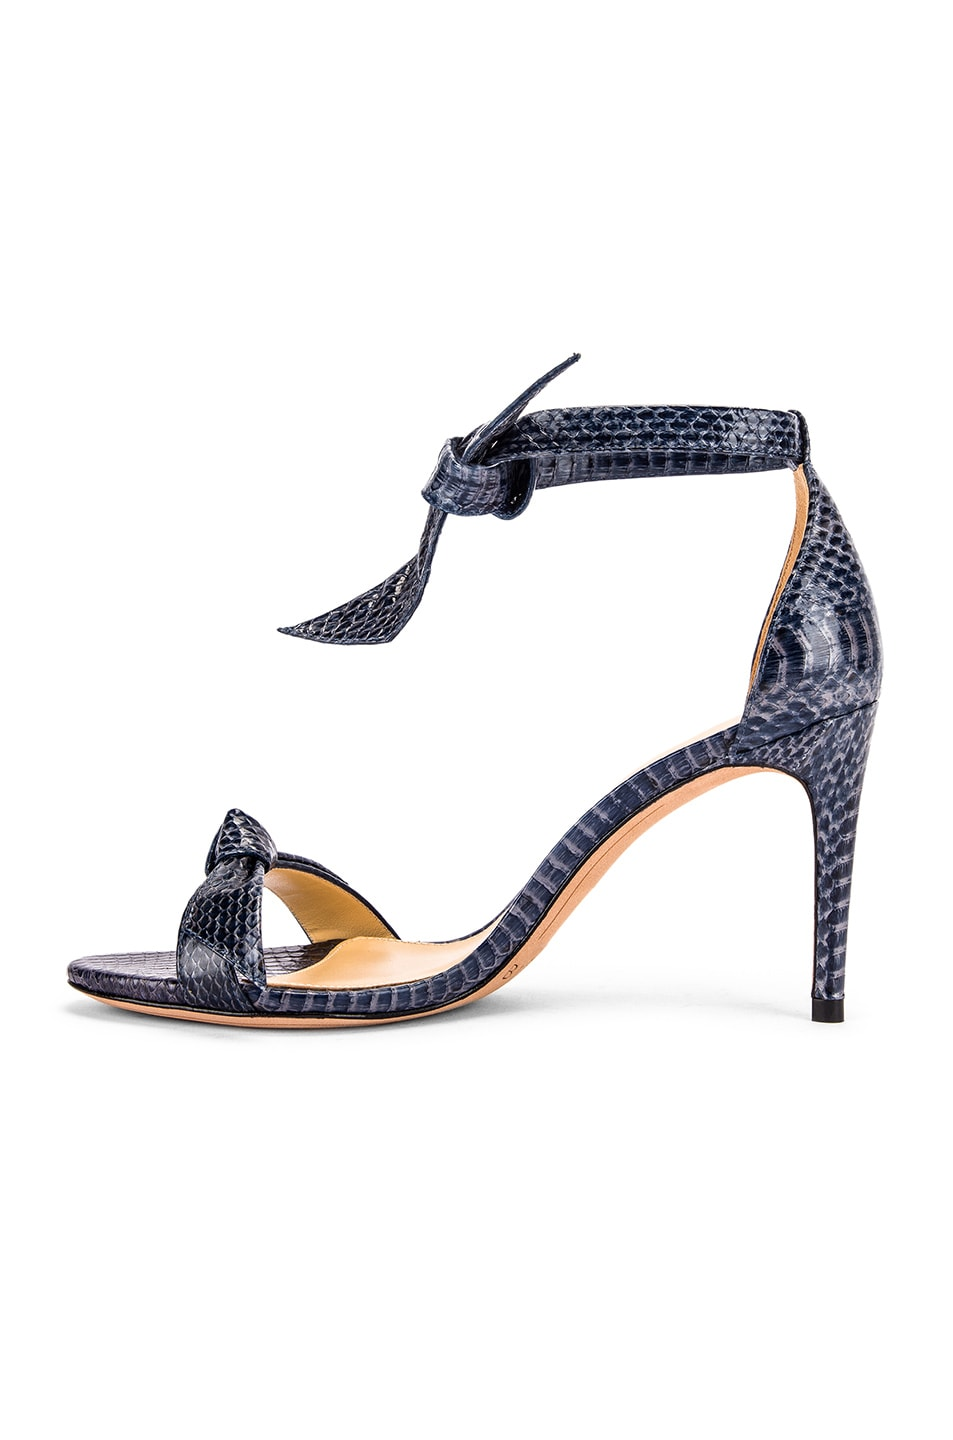 Image 5 of Alexandre Birman Clarita Ankle Strap Sandals in Marine